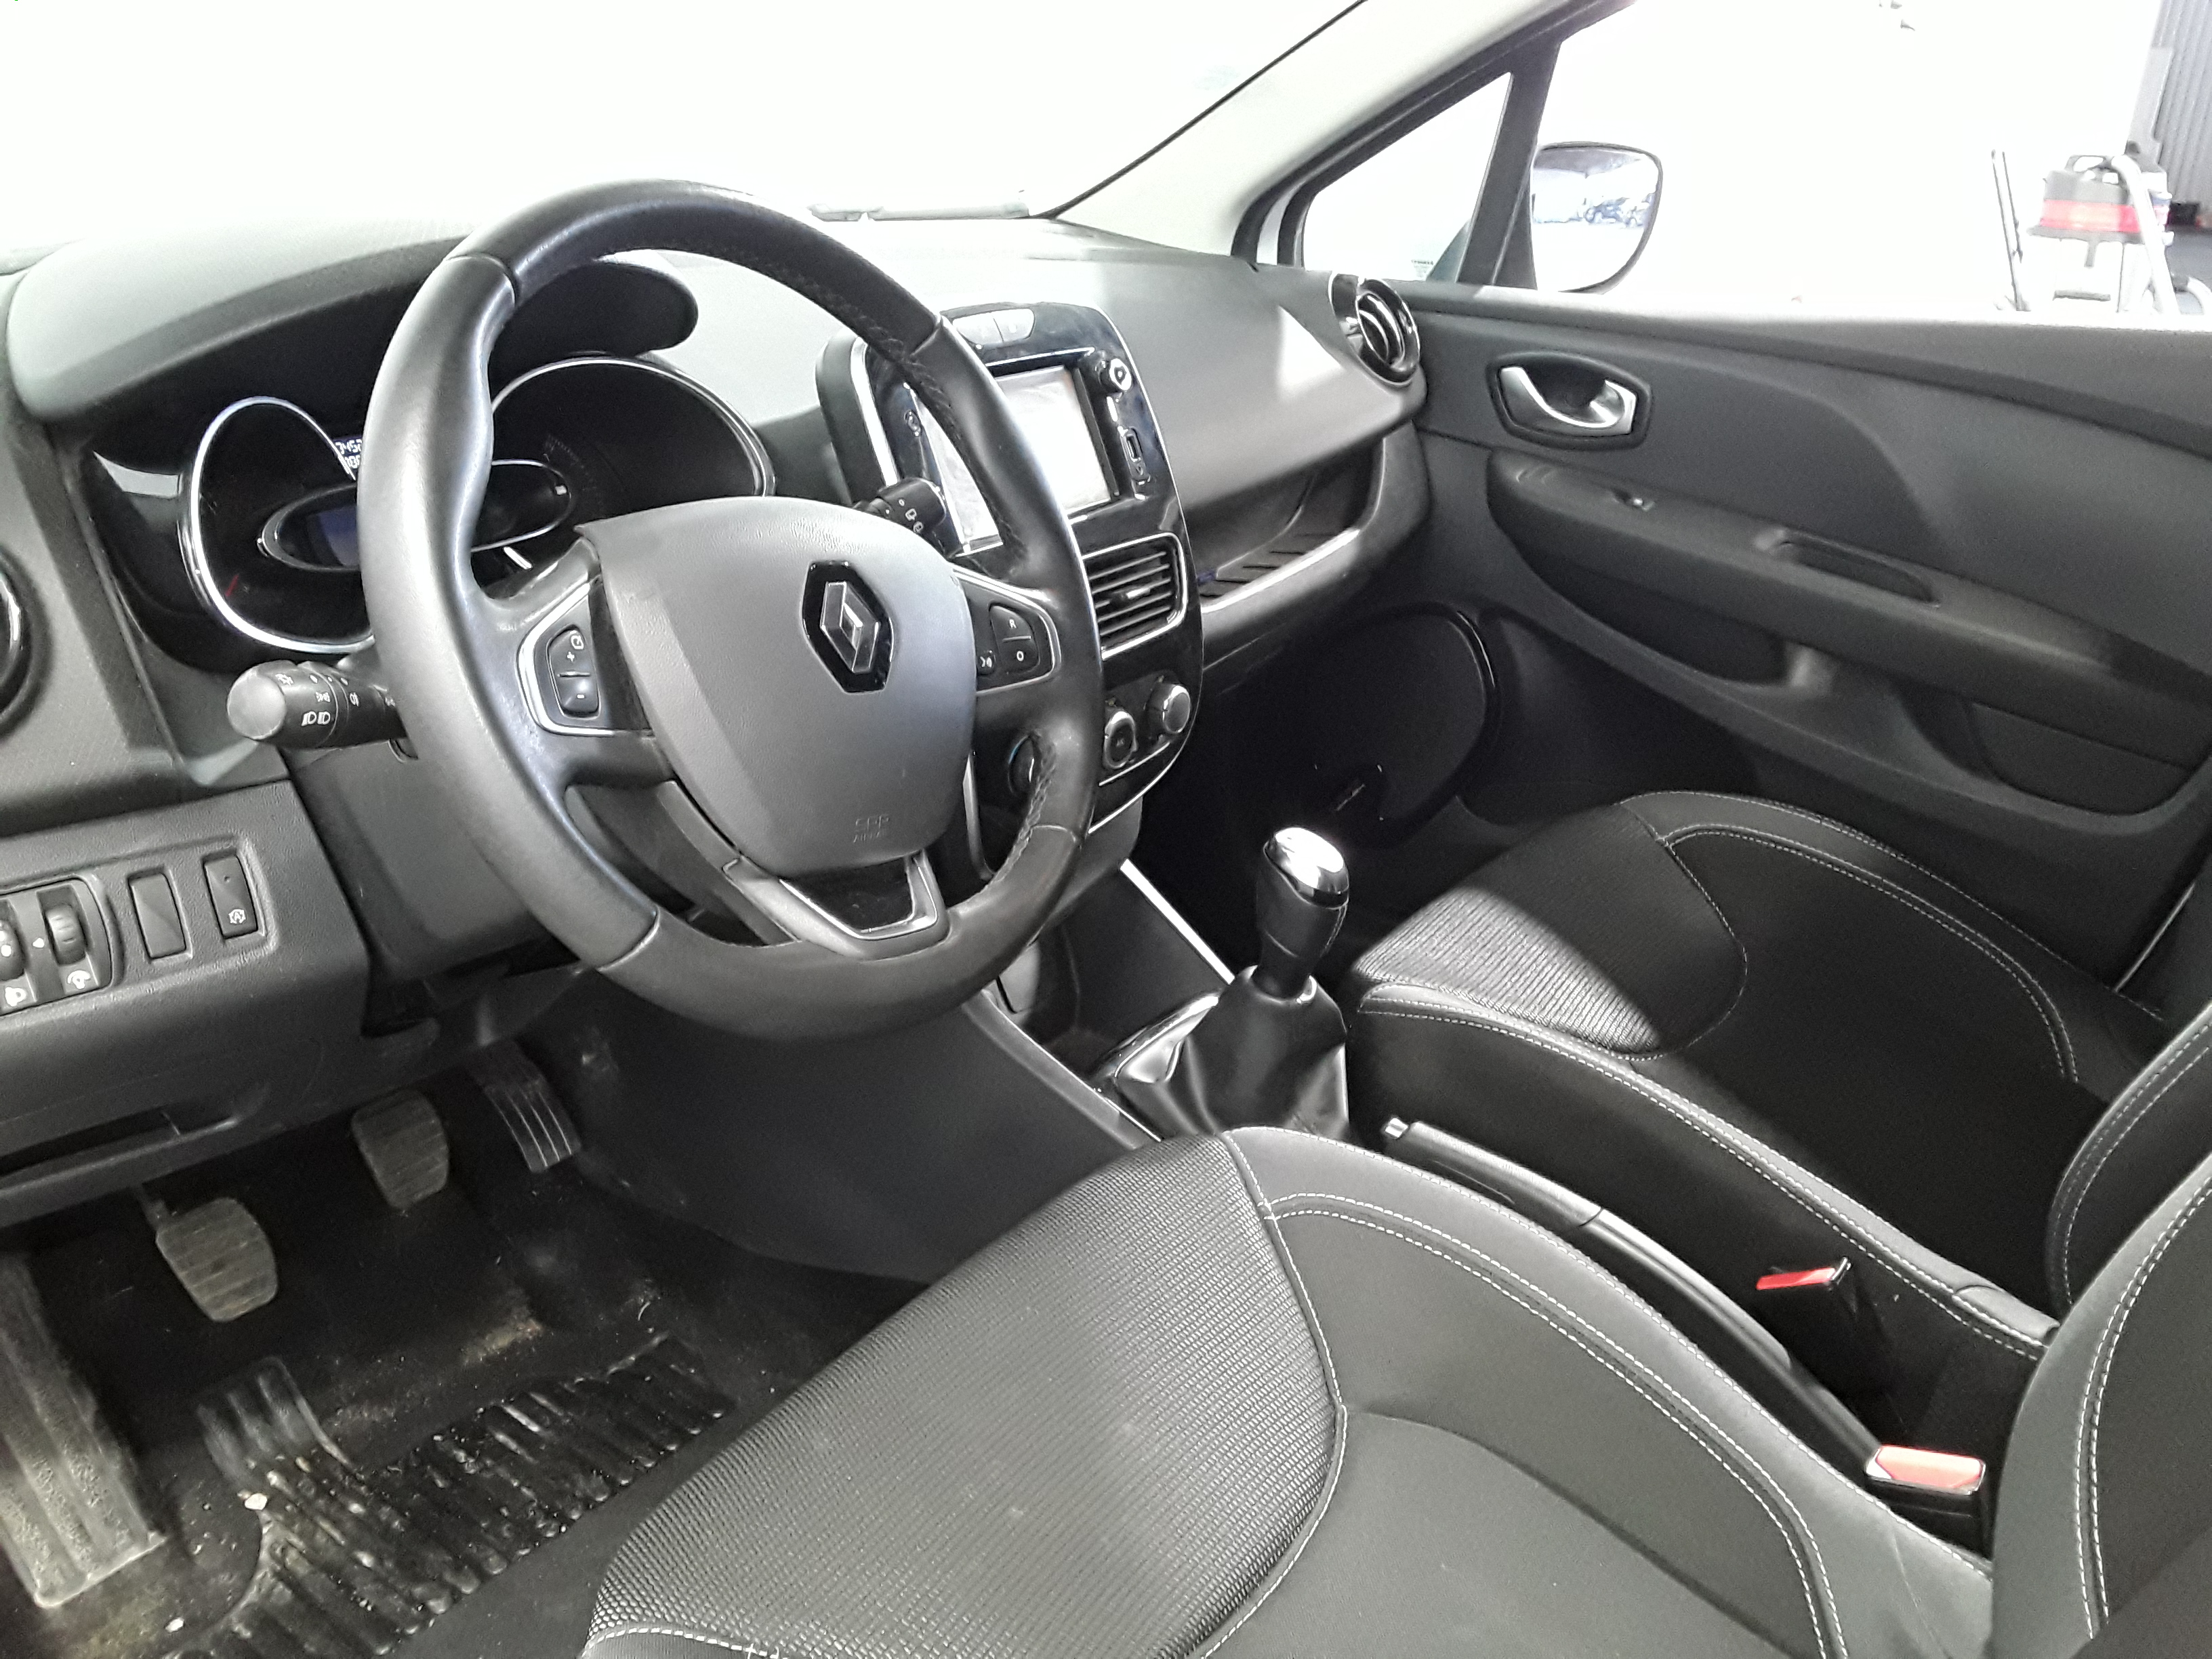 RENAULT CLIO IV SOCIETE 2017 à 8300 € - Photo n°12